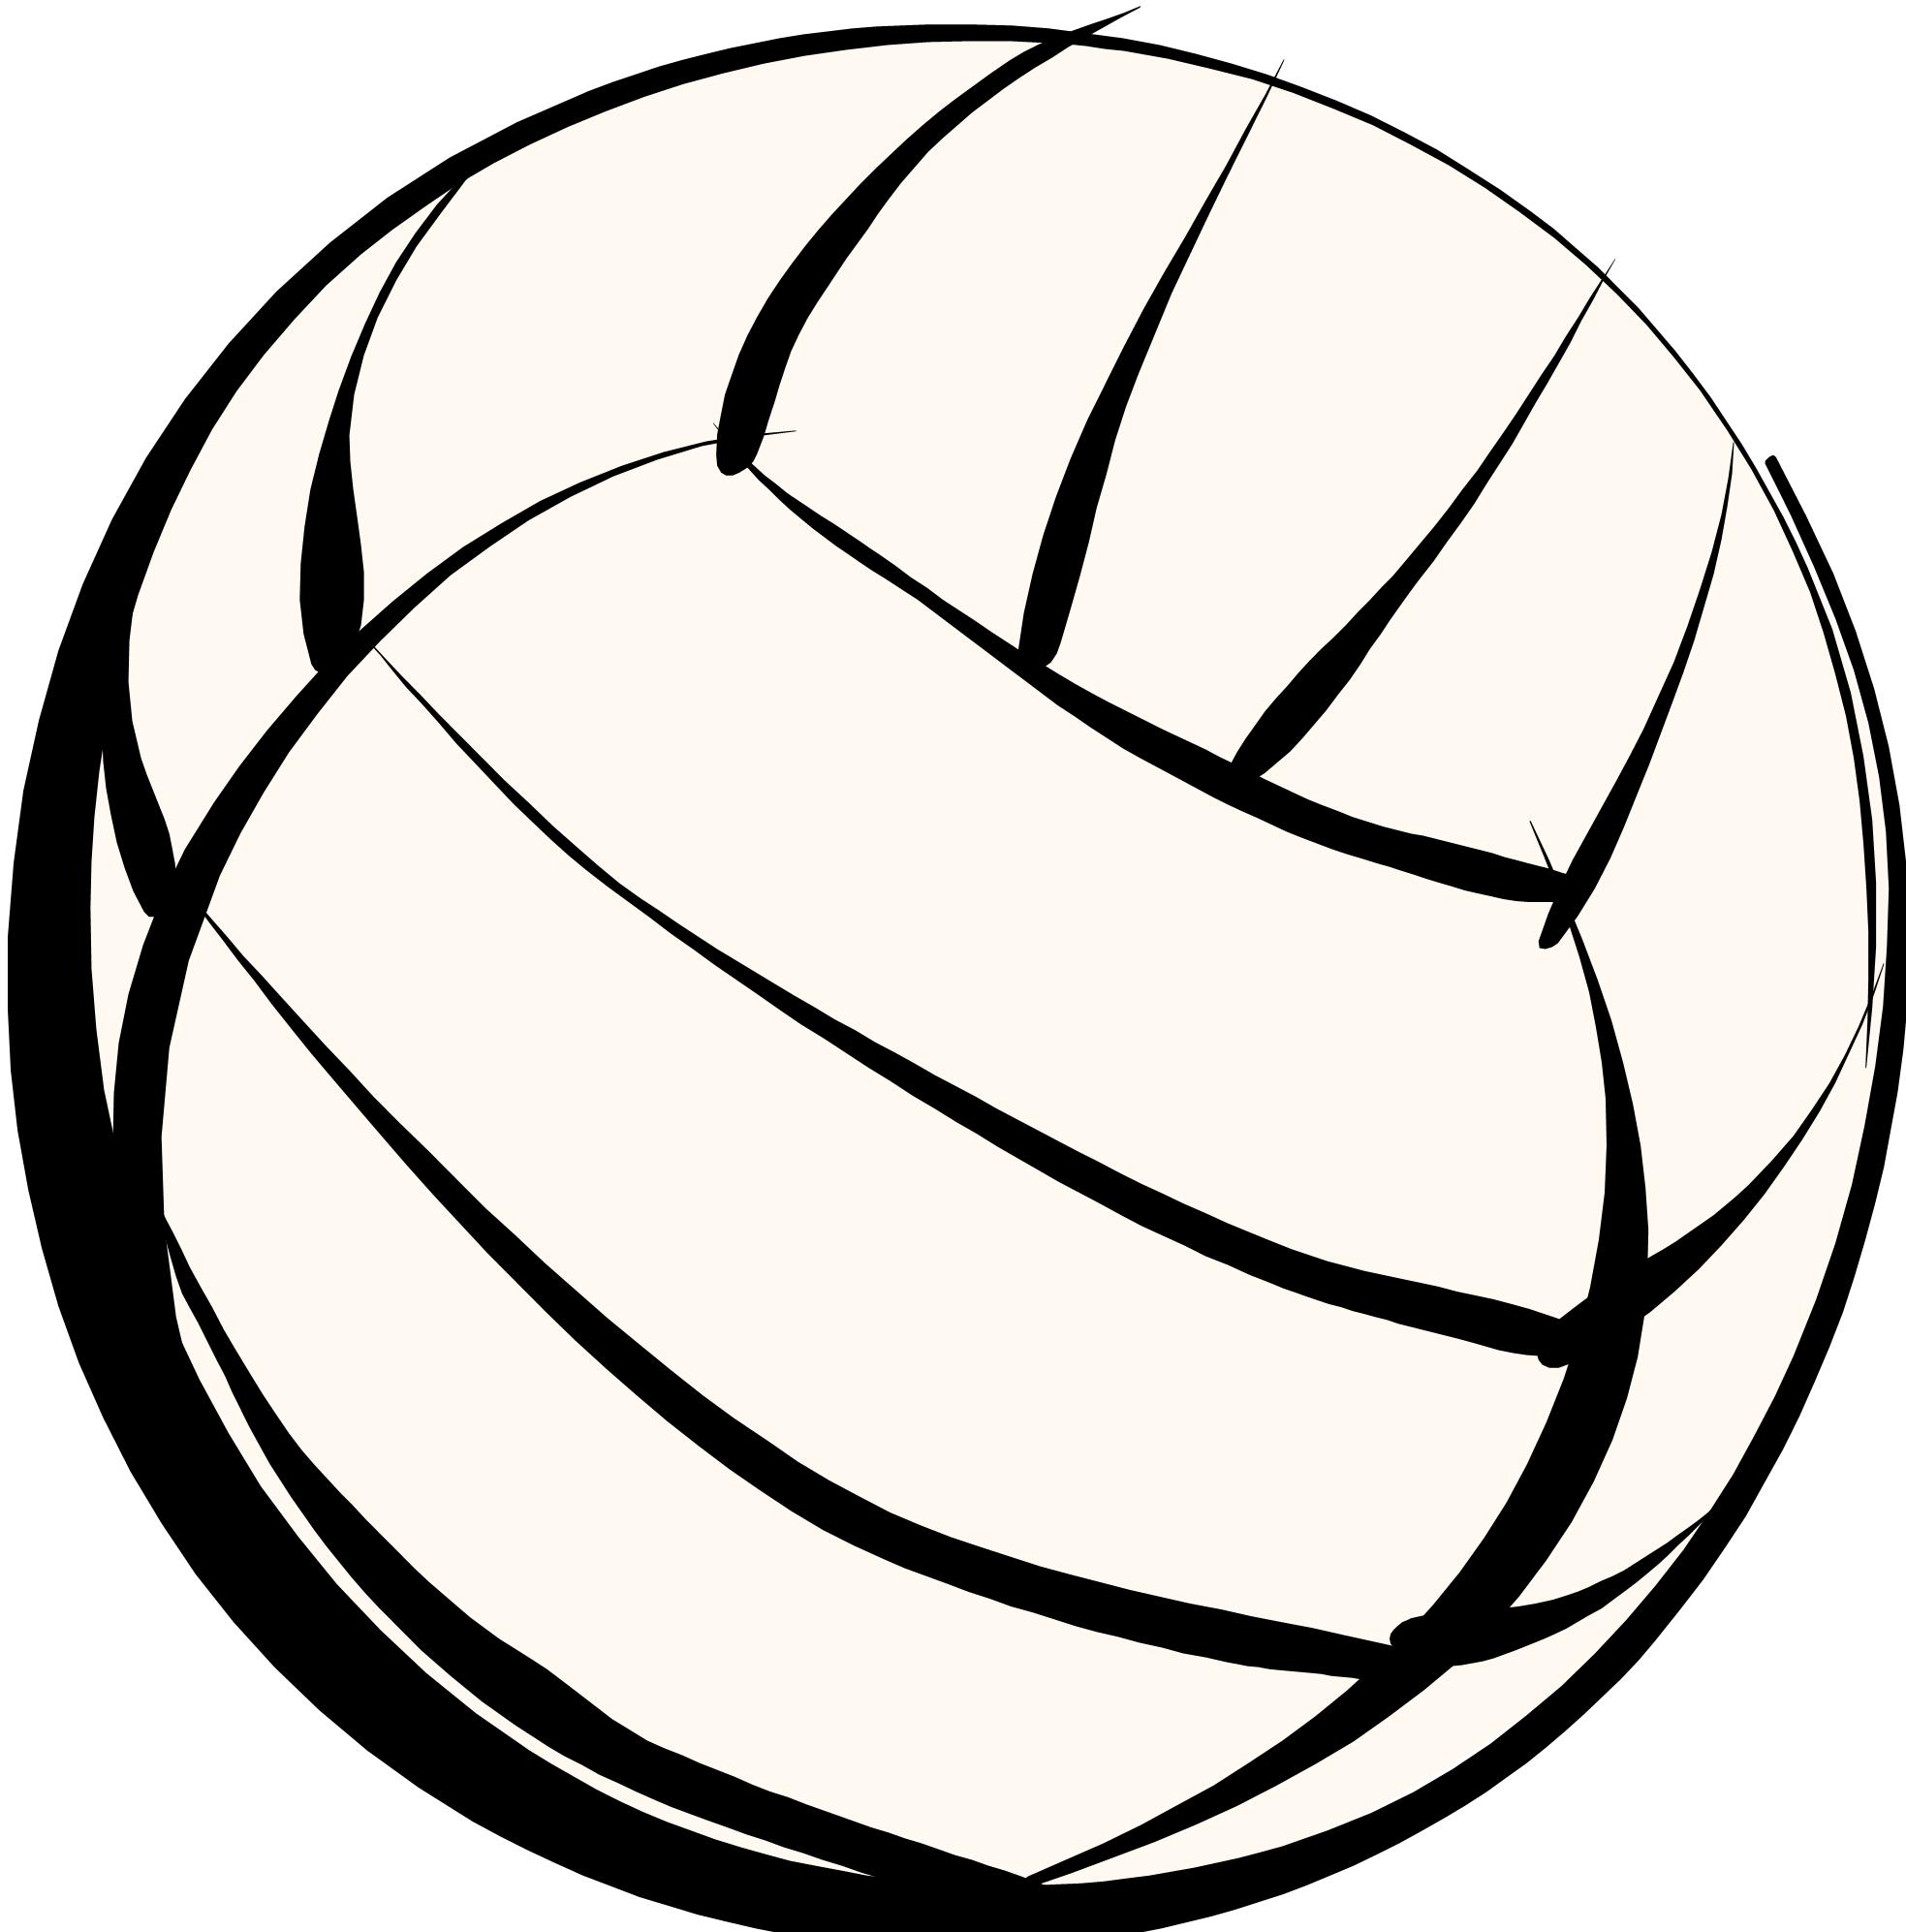 Volleyball clipart cartoon. Free animated download clip